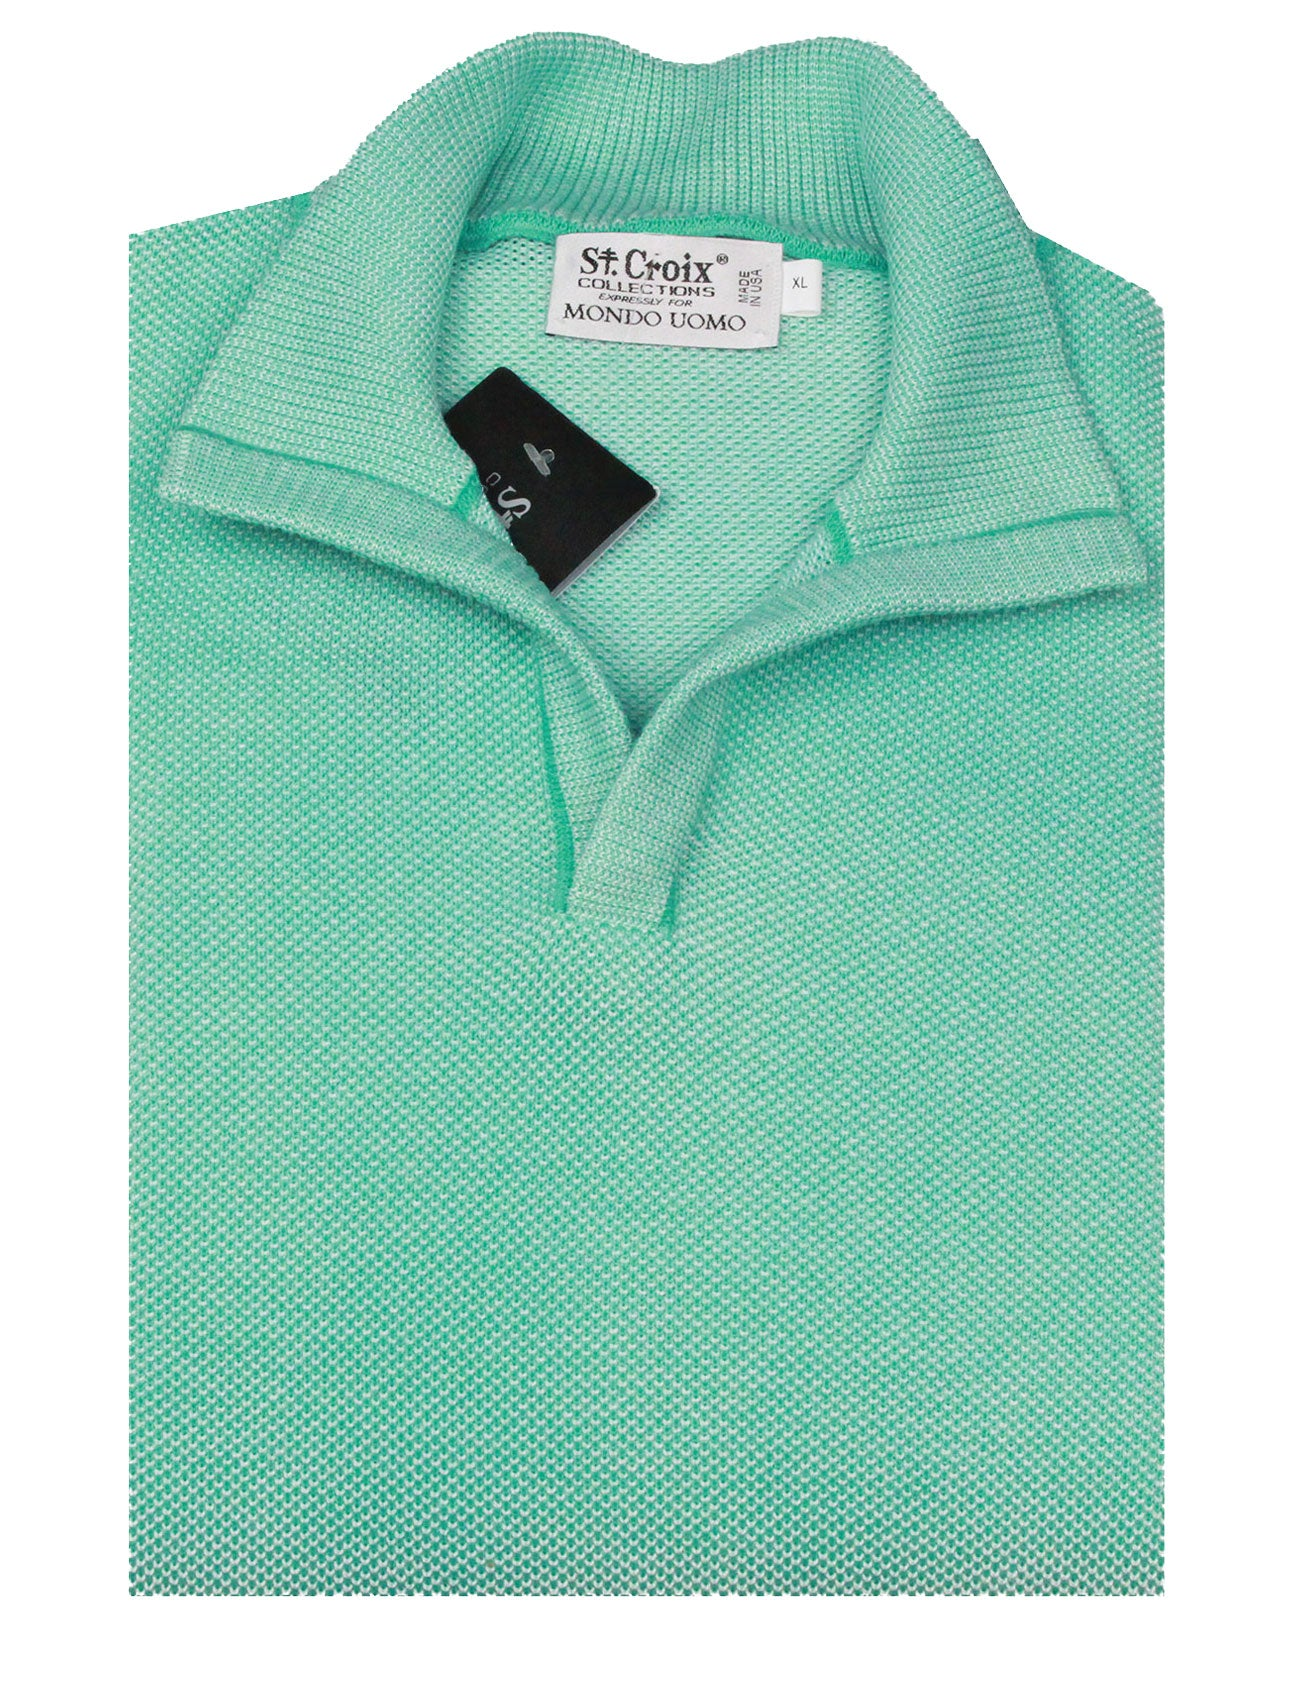 St Croix Sweater Open Mock Neck Turquoise